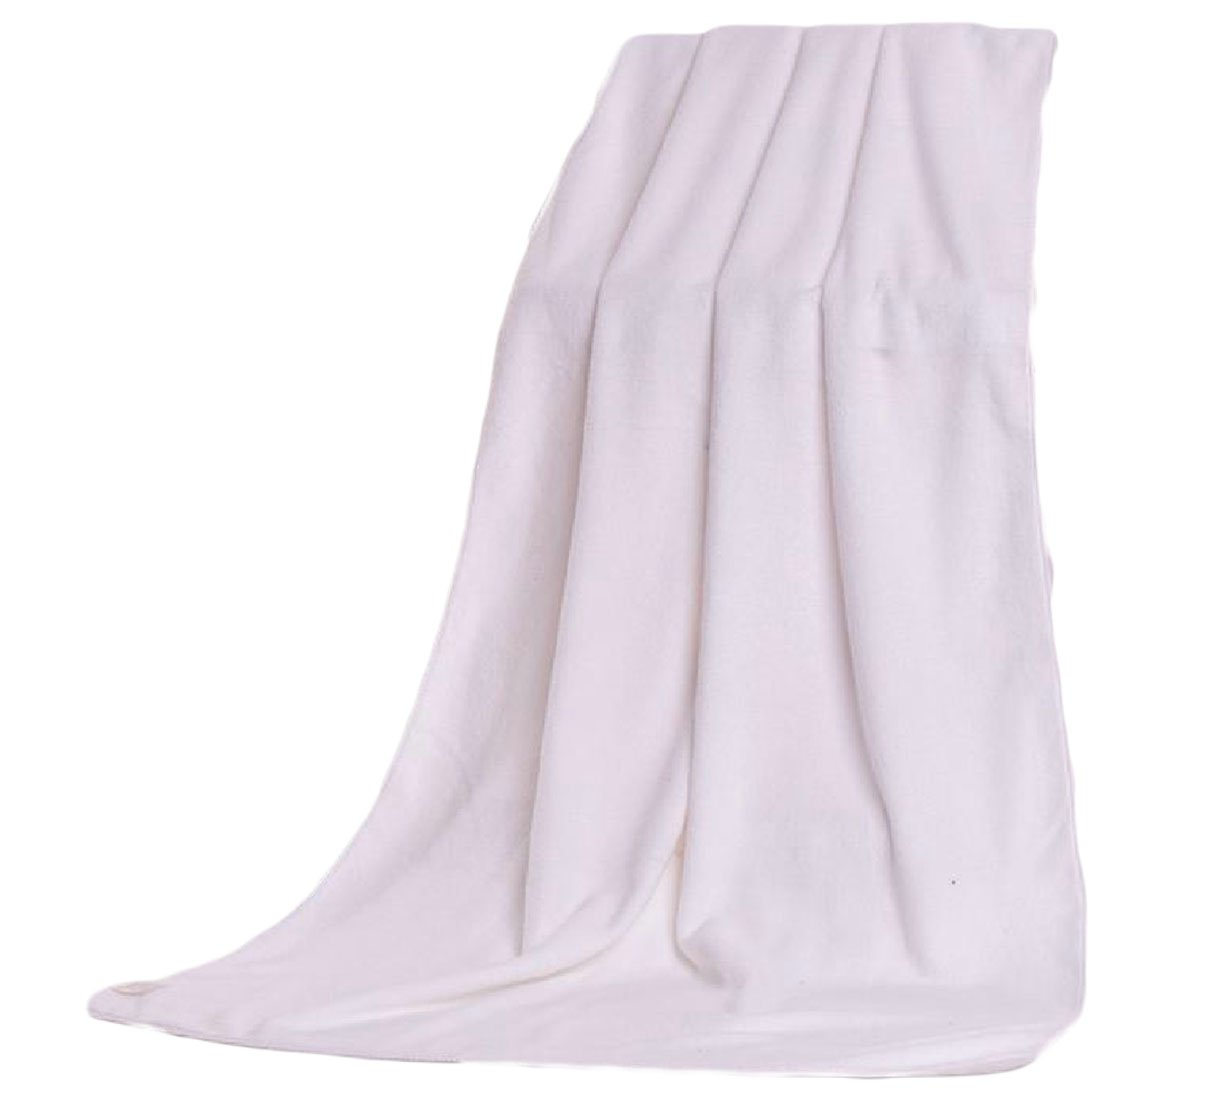 XINHE Fade-Resistant Plain Everyday Ultra Absorbent Sheer Classic Machine Wash Bath Beach Spa and Fitness Towel White 80180